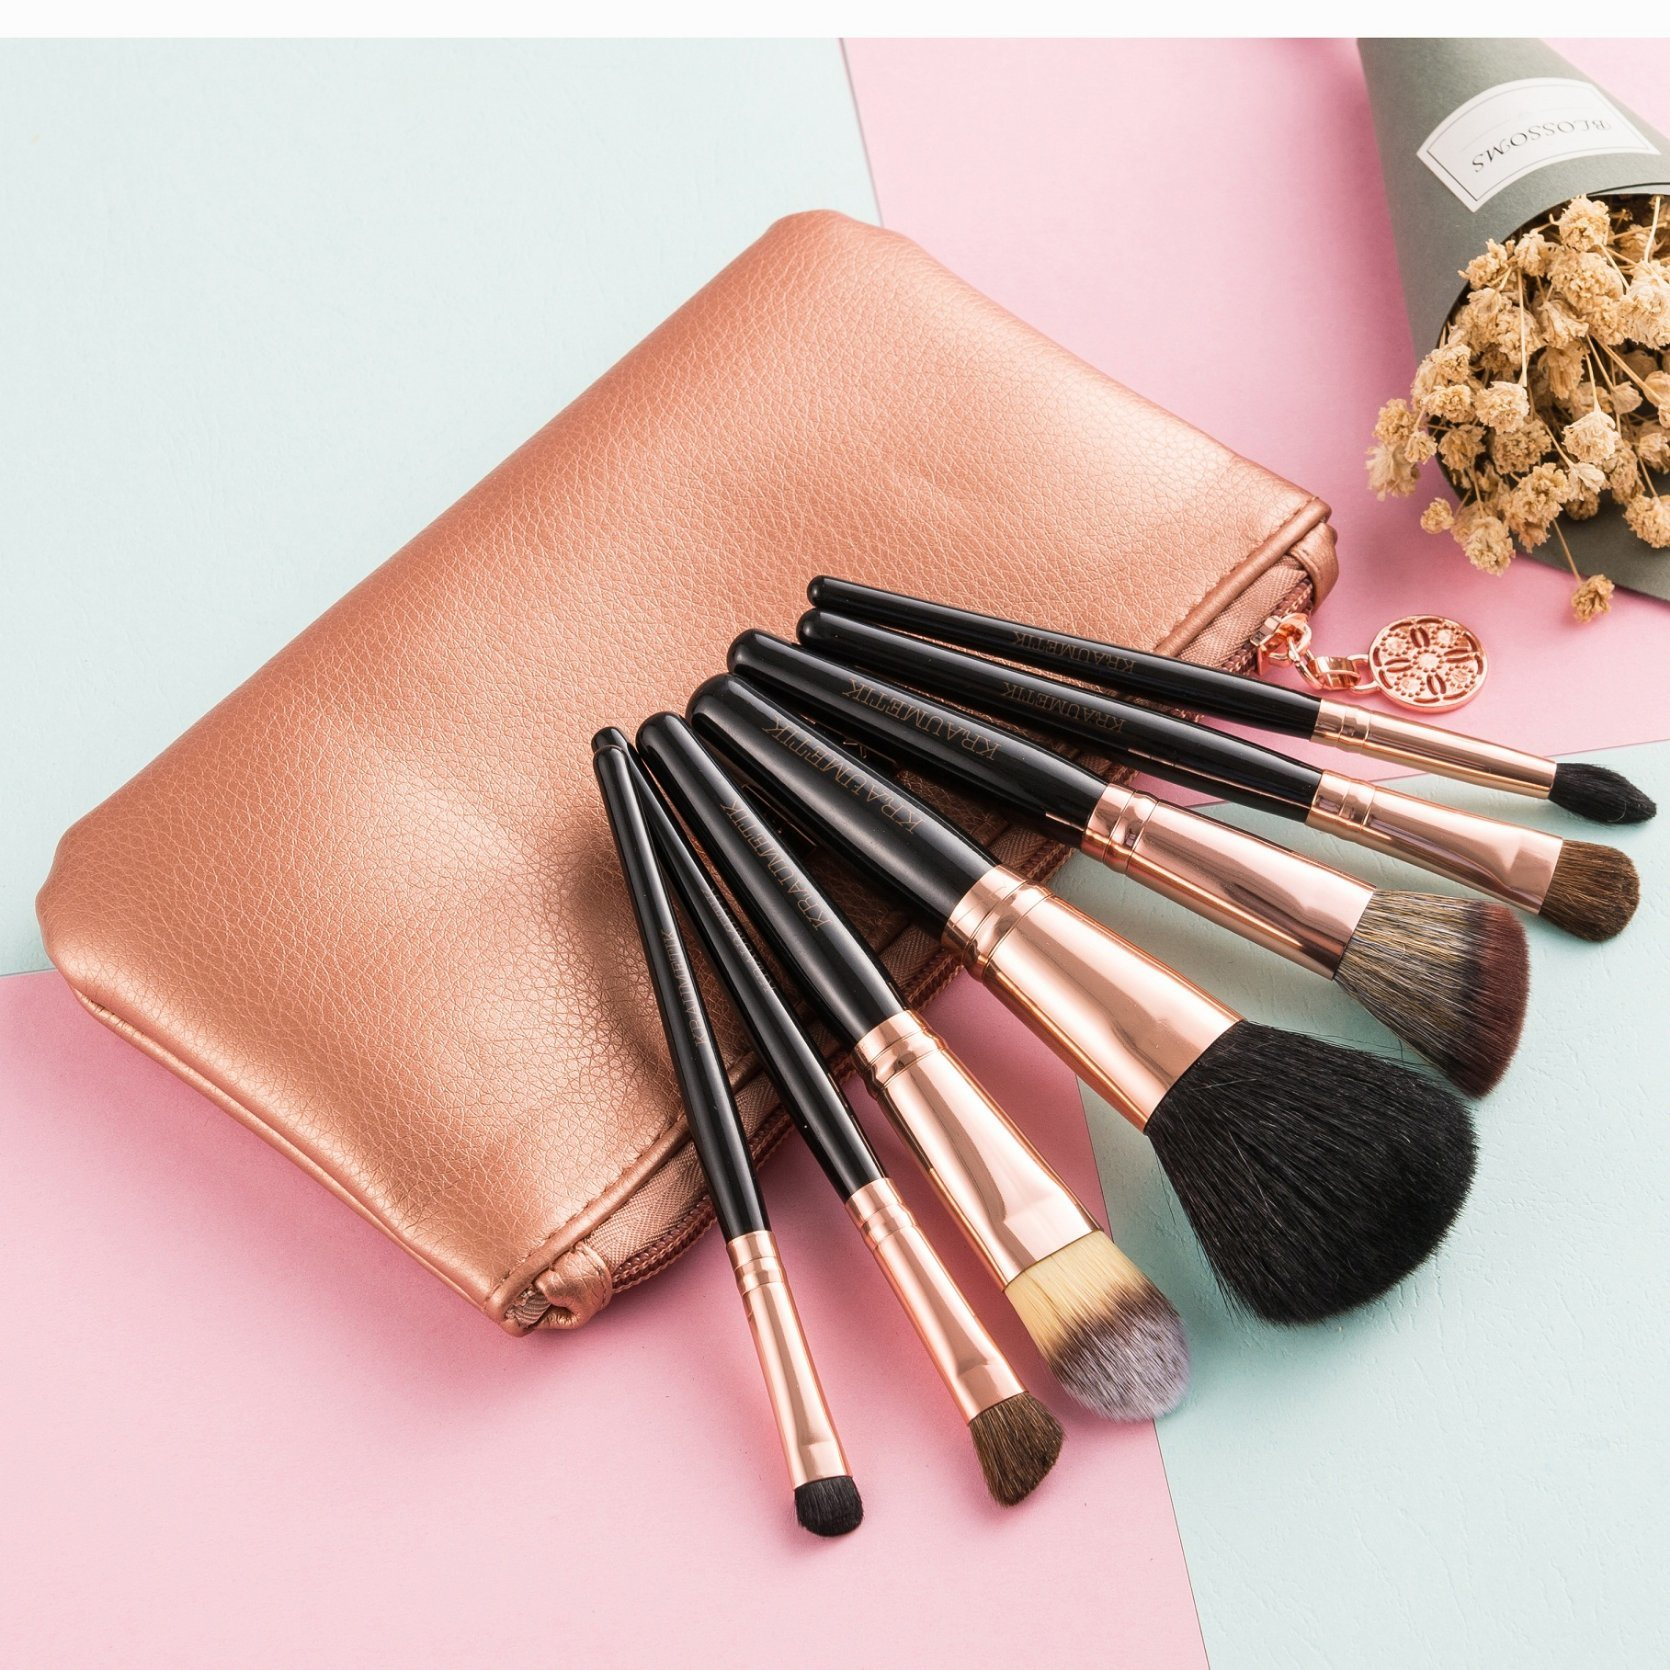 China Cosmetic Makeup Brush Manufacturers 36 Pcs Professional Facial Wood Make Up Brushes Tools Kit Set With Black Leather Case Suppliers